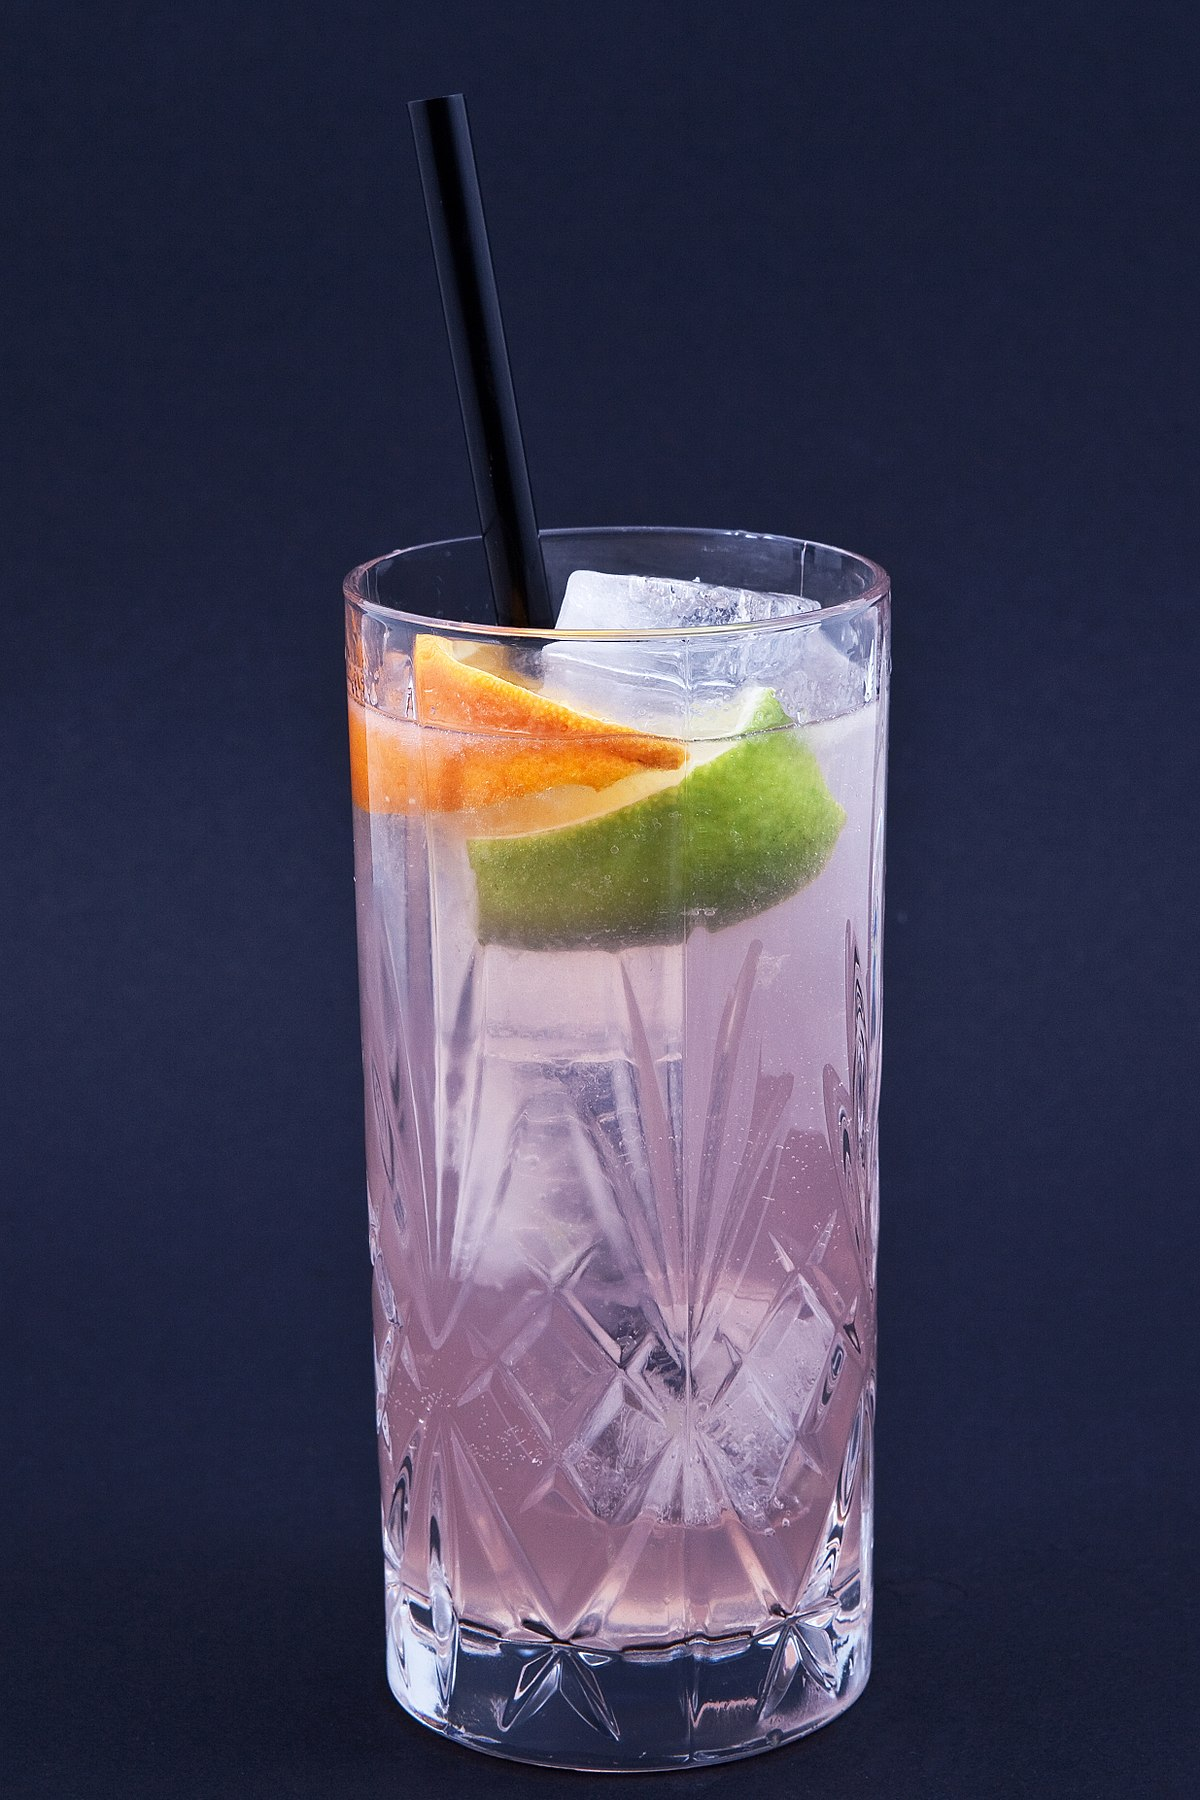 Raum Artikel Paloma (cocktail) – Wikipedia